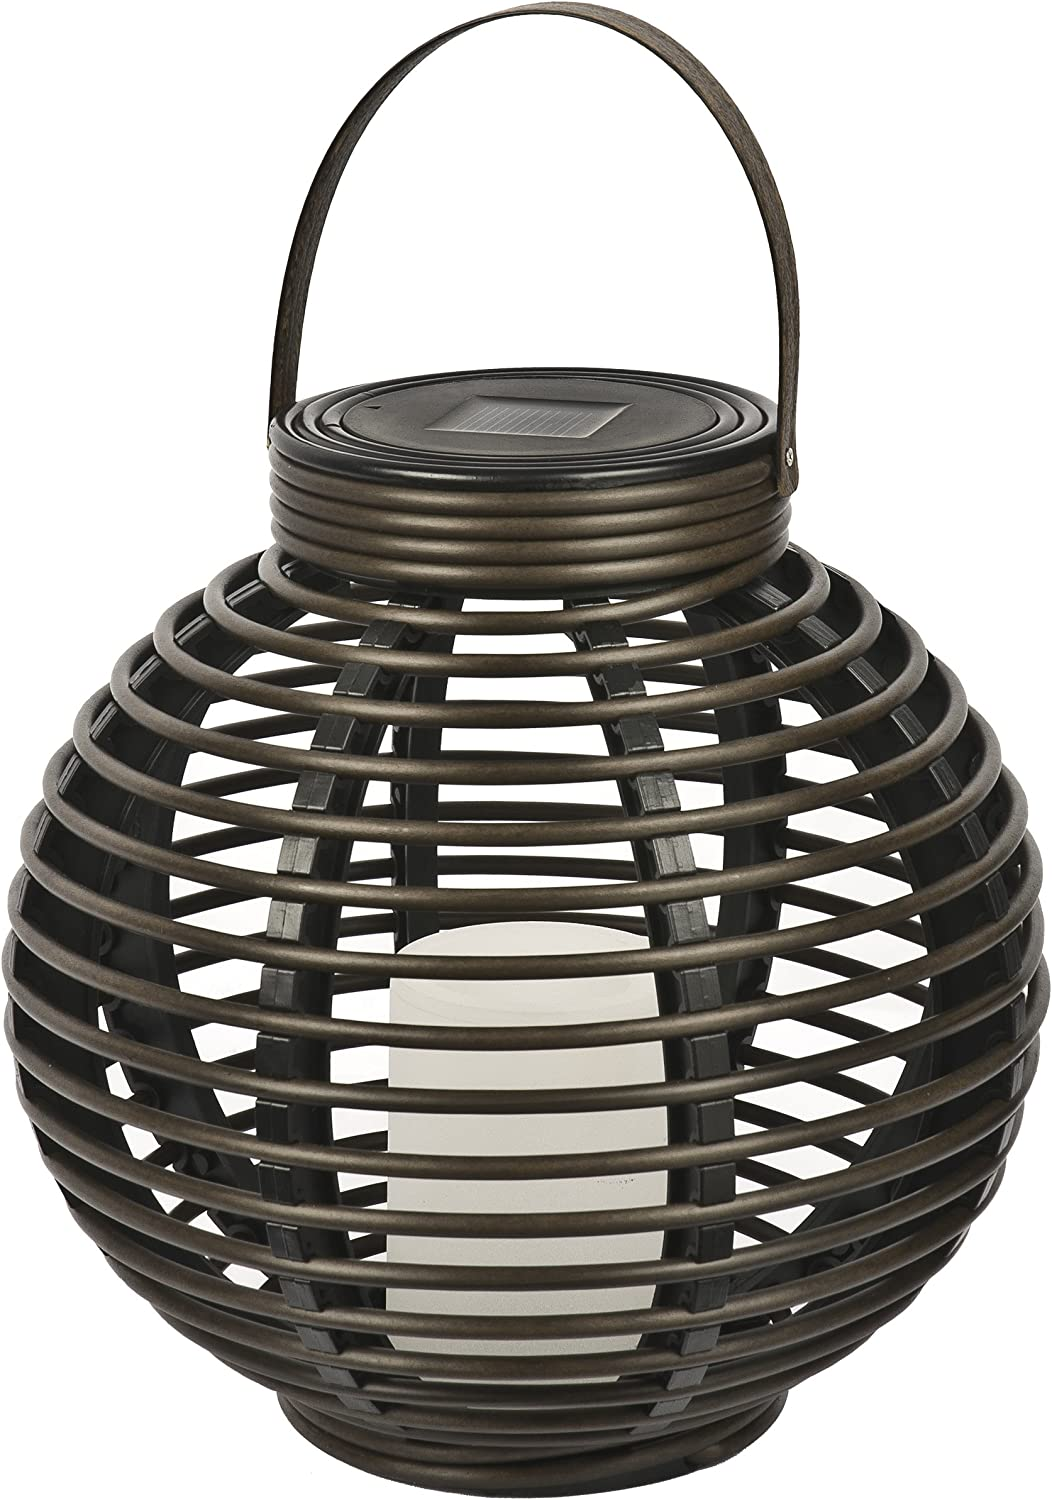 Paradise by Sterno Home Solar Flickering LED Round Rattan Basket Outdoor Light, Brown